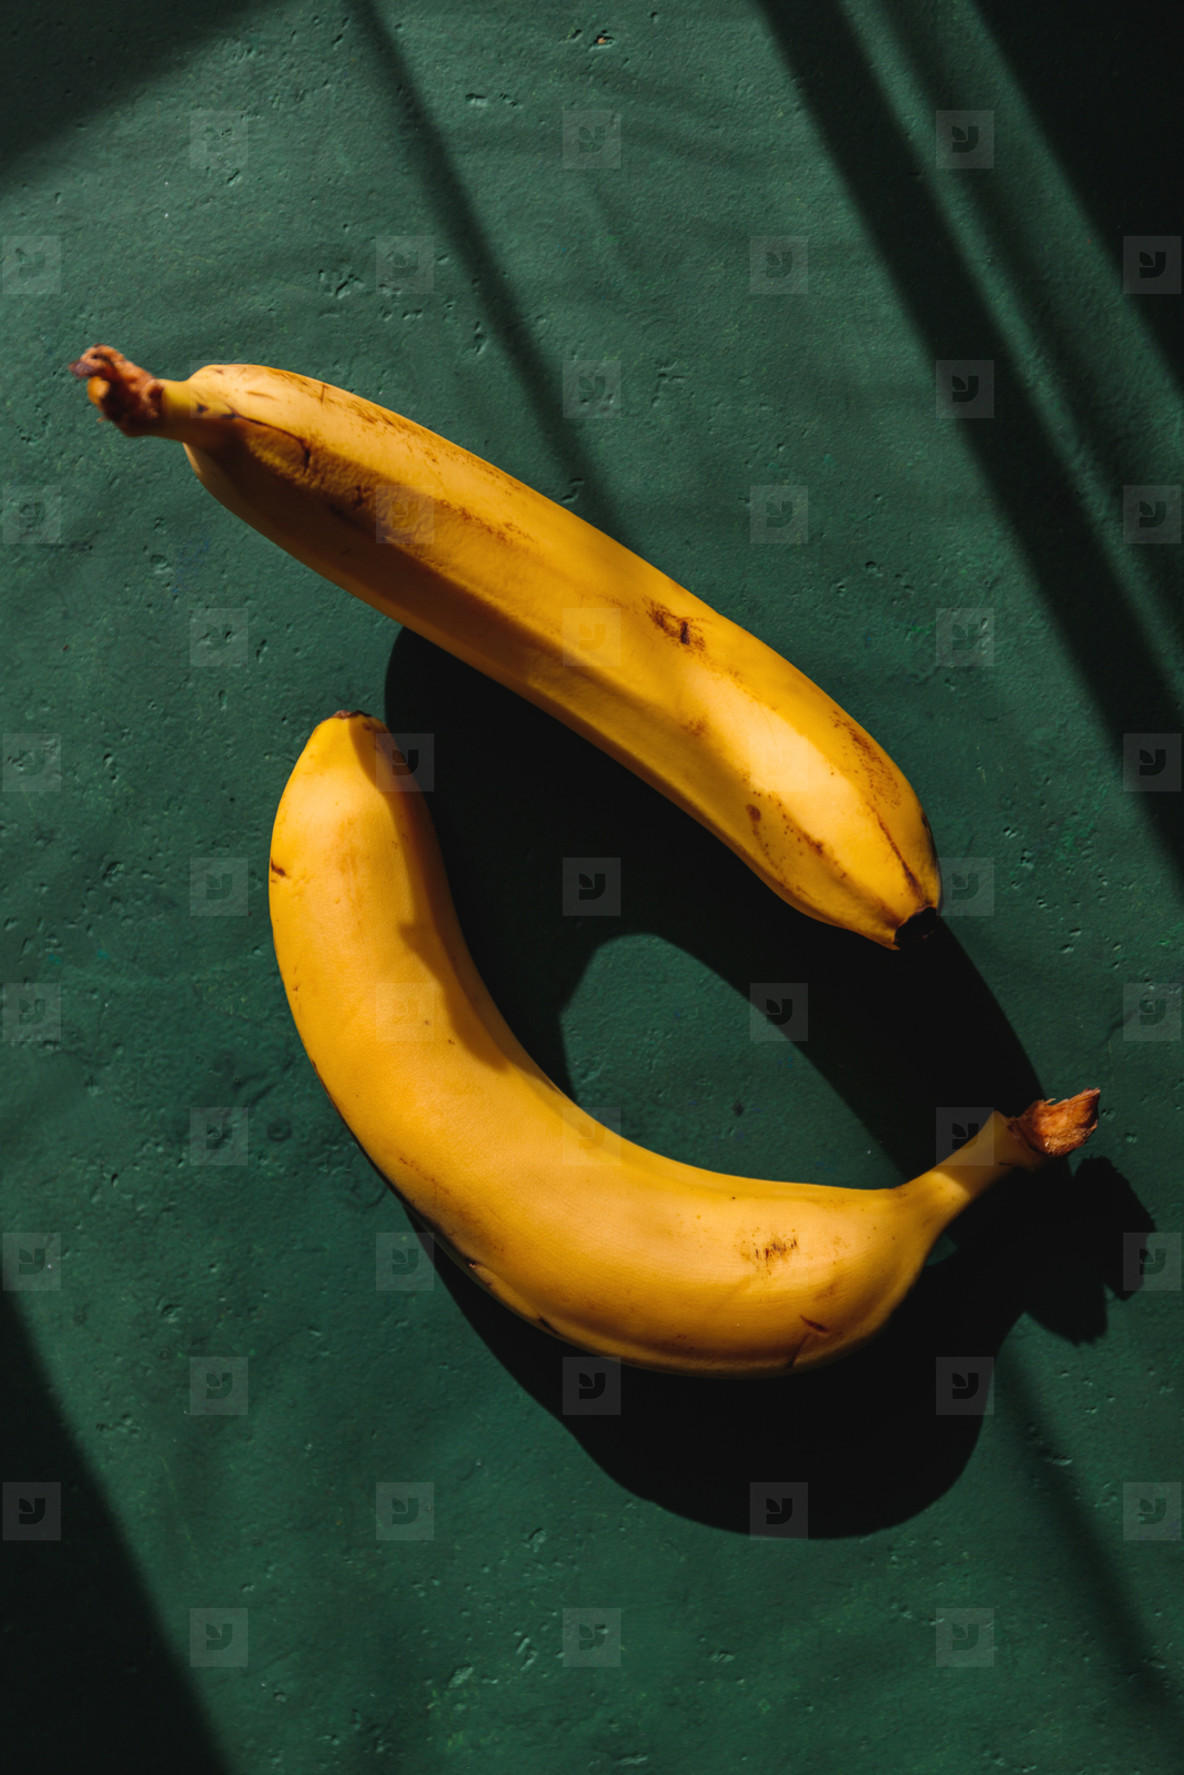 Bananas on a green background  Summer abstract creative photography with sun light and shadows